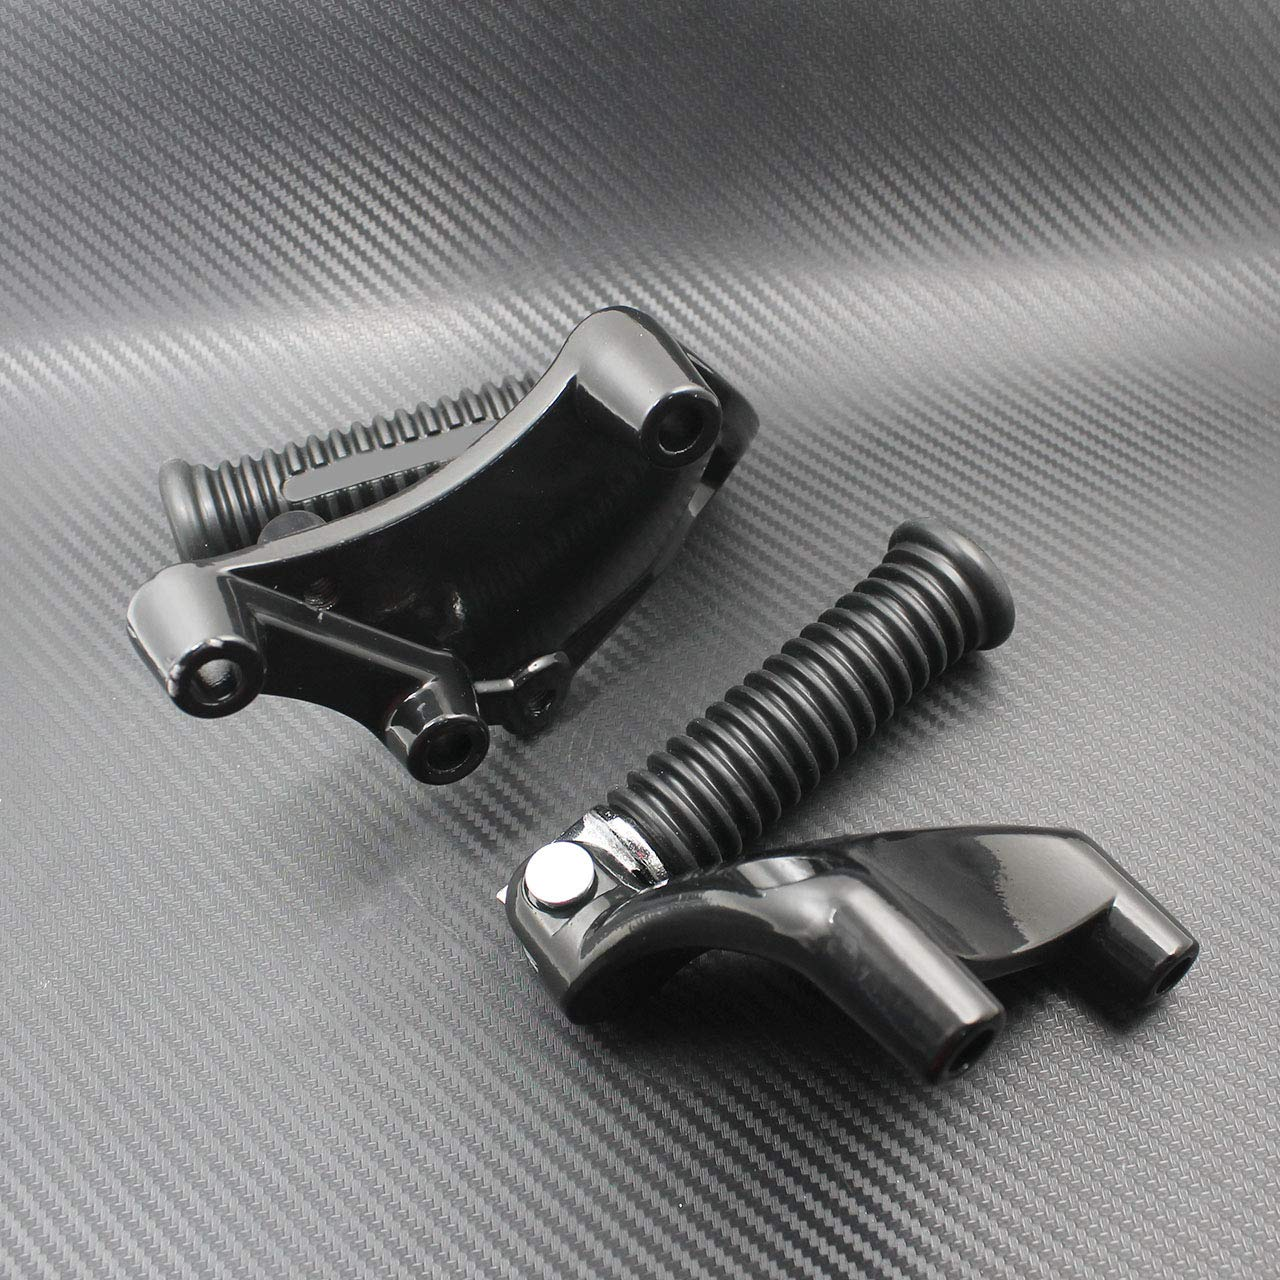 YHMTIVTU Motorcycle Rear Passenger Foot Pegs Footpegs Foot Rests Pedal Mount Fits for Harley Sportster Iron XL 883 1200 48 72 2014-2018